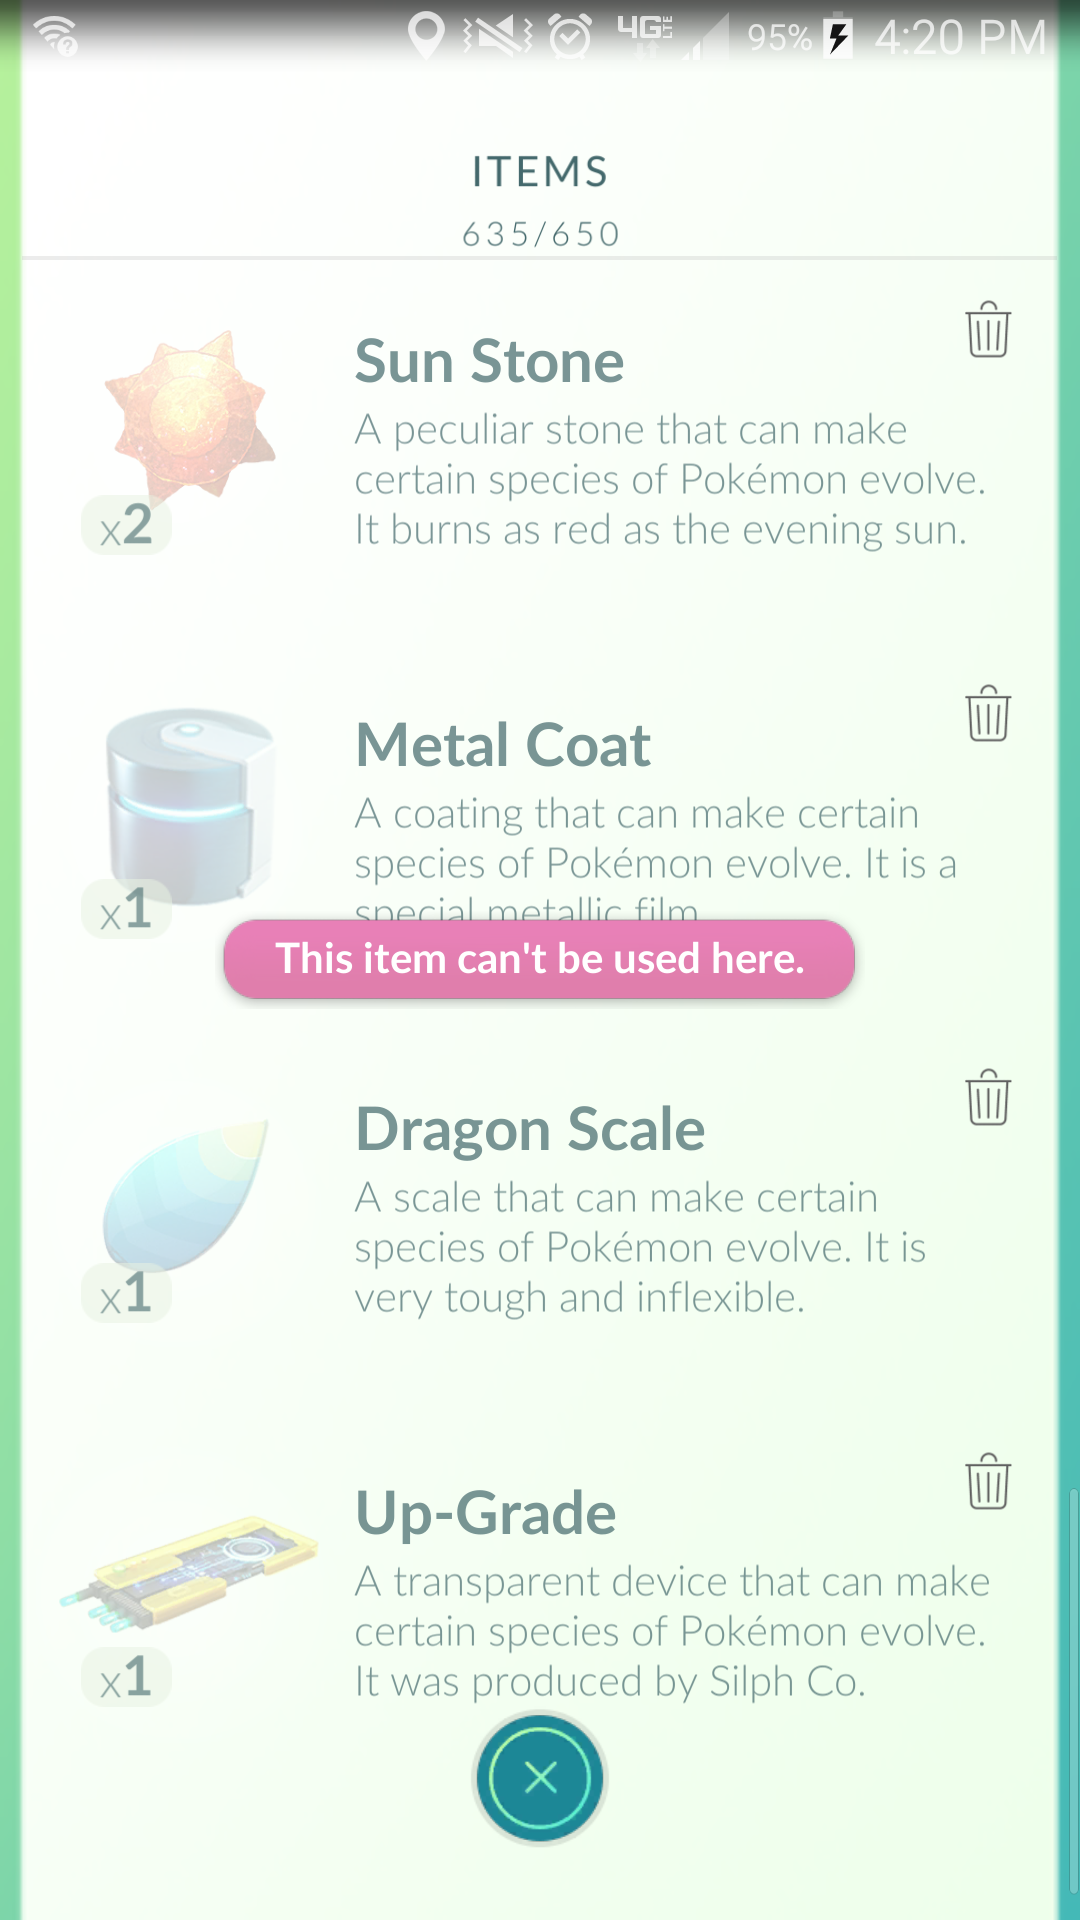 6souls games shiny first dratini pokemon also only huzzah 2016 personal favorite finally managed july second candies short dragonite about dragonites have dragonair unfortunately mobile from probably caught very left hours event hour while most then since more started late launched vacation when eggs